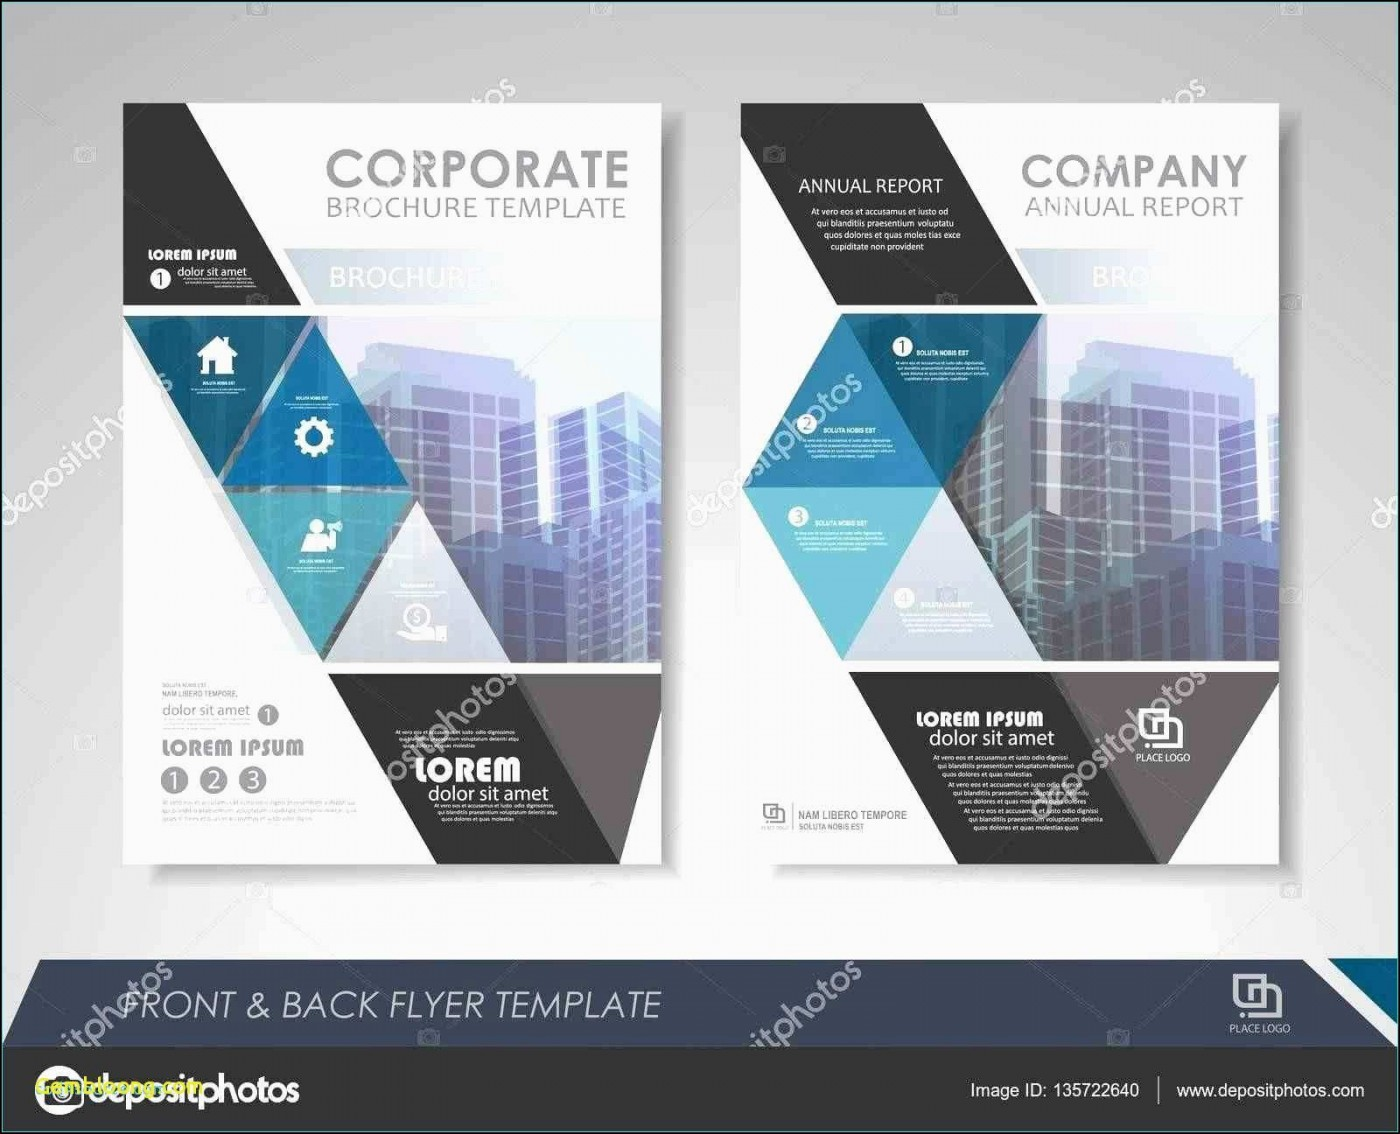 003 Exceptional Brochure Template Free Download Picture  For Word 2010 Microsoft Ppt1400